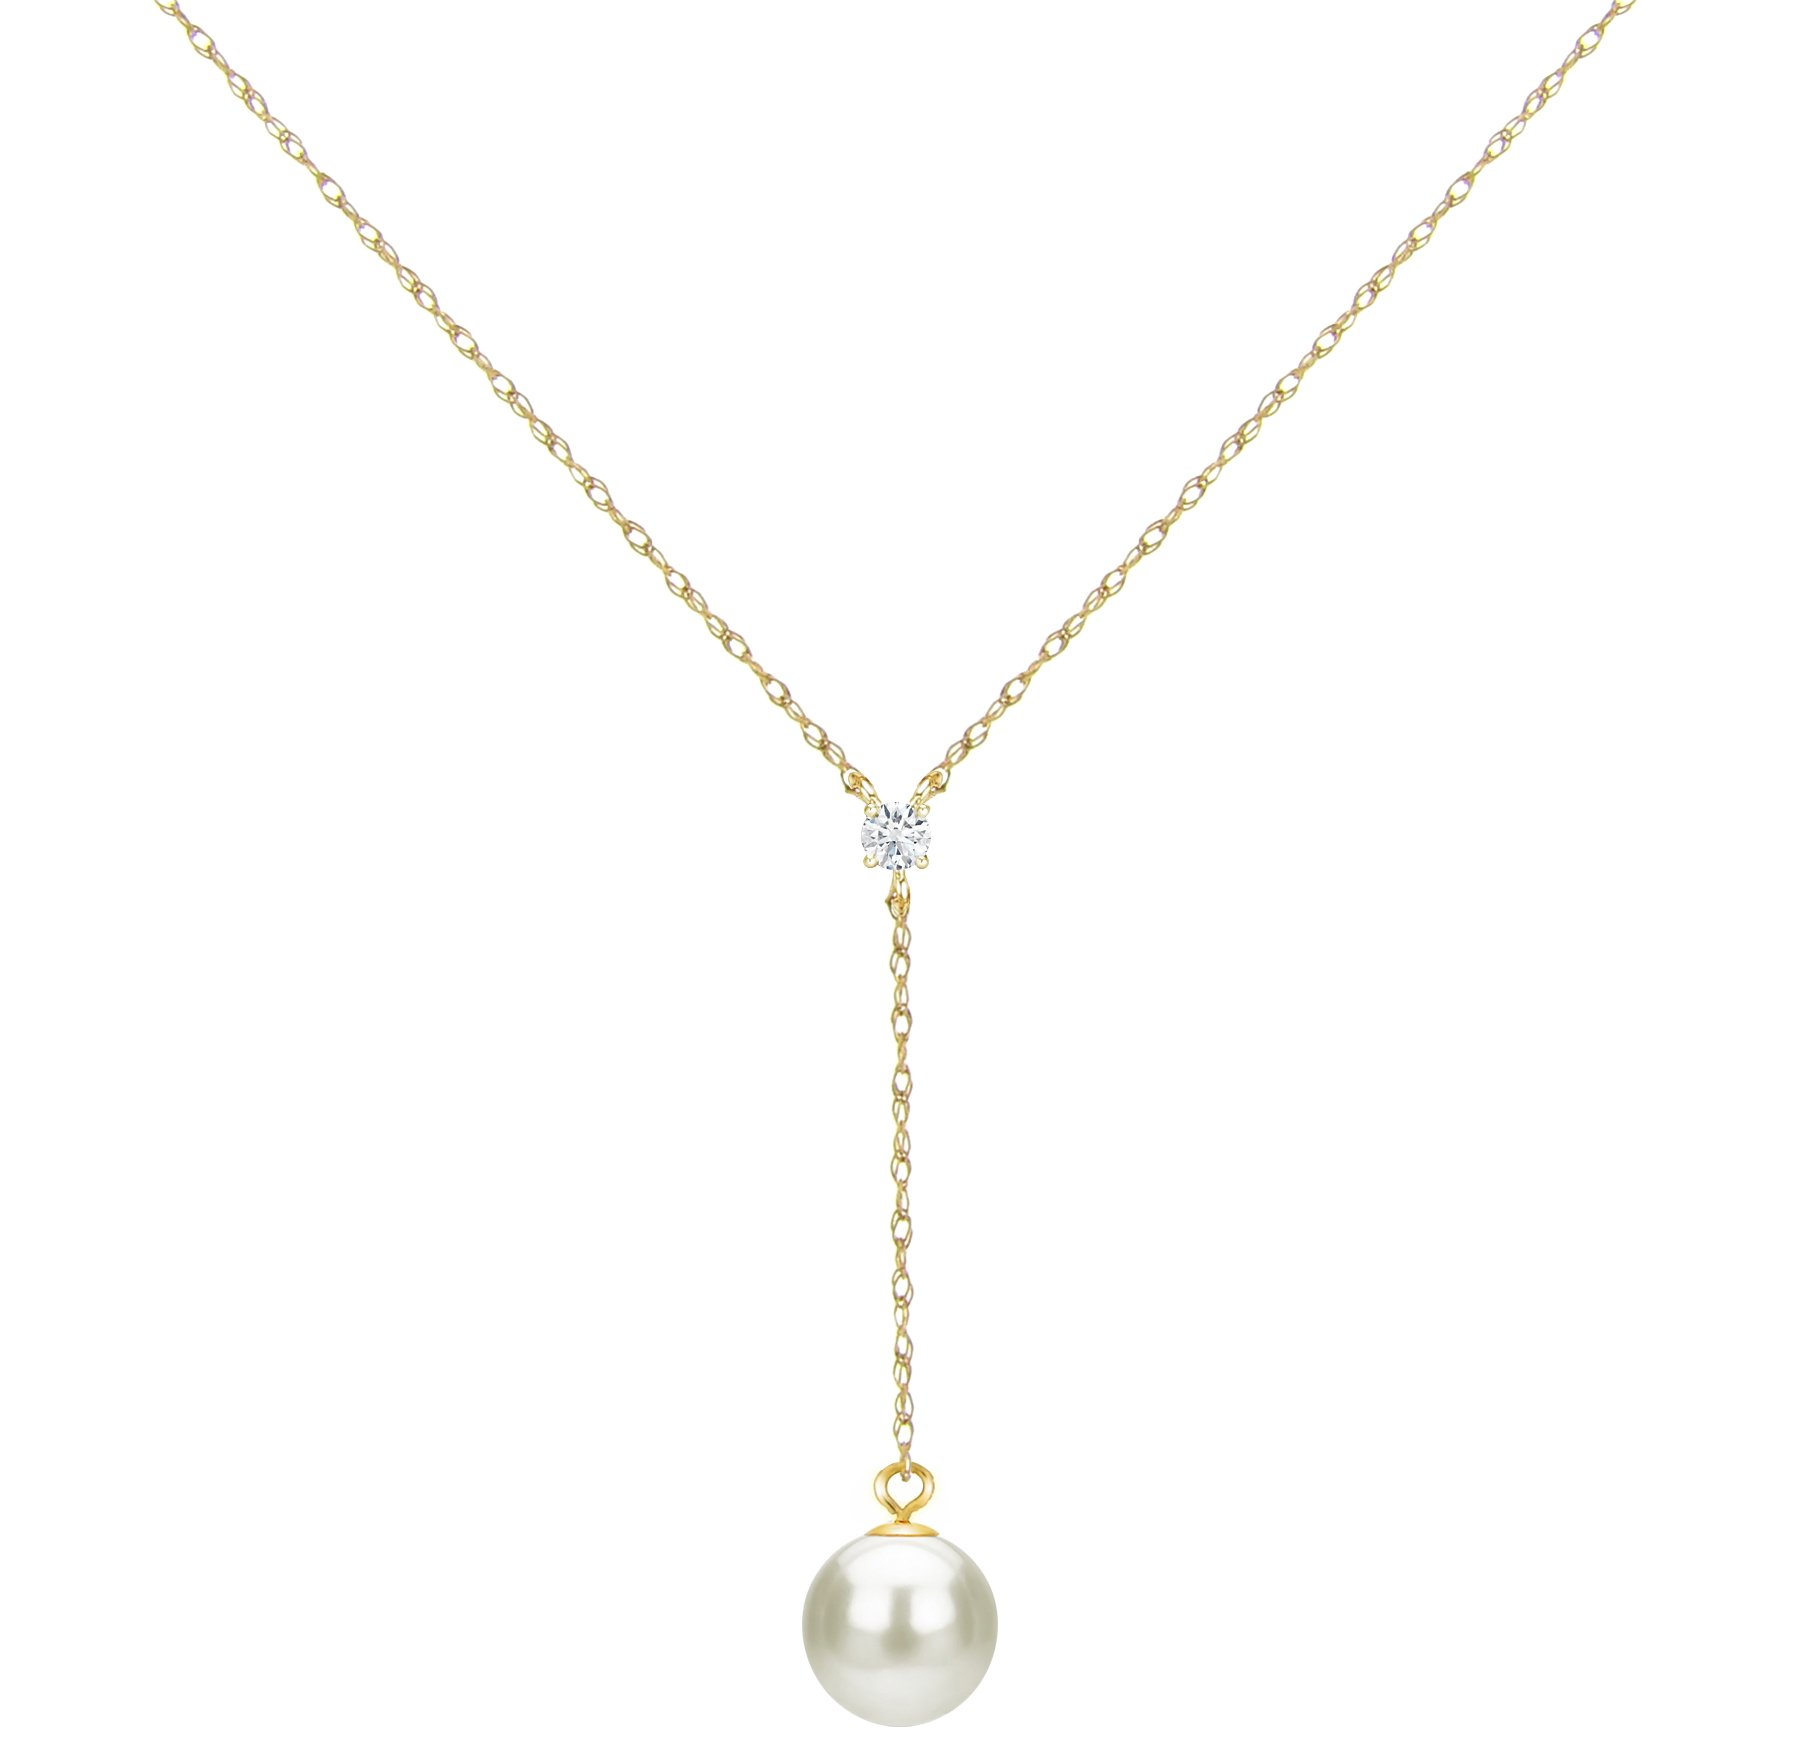 Tin Cup Y Necklace Freshwater Cultured White Pearl 14K Gold Chain Diamond Jewelry Women 1/20 CTTW 9-9.5mm